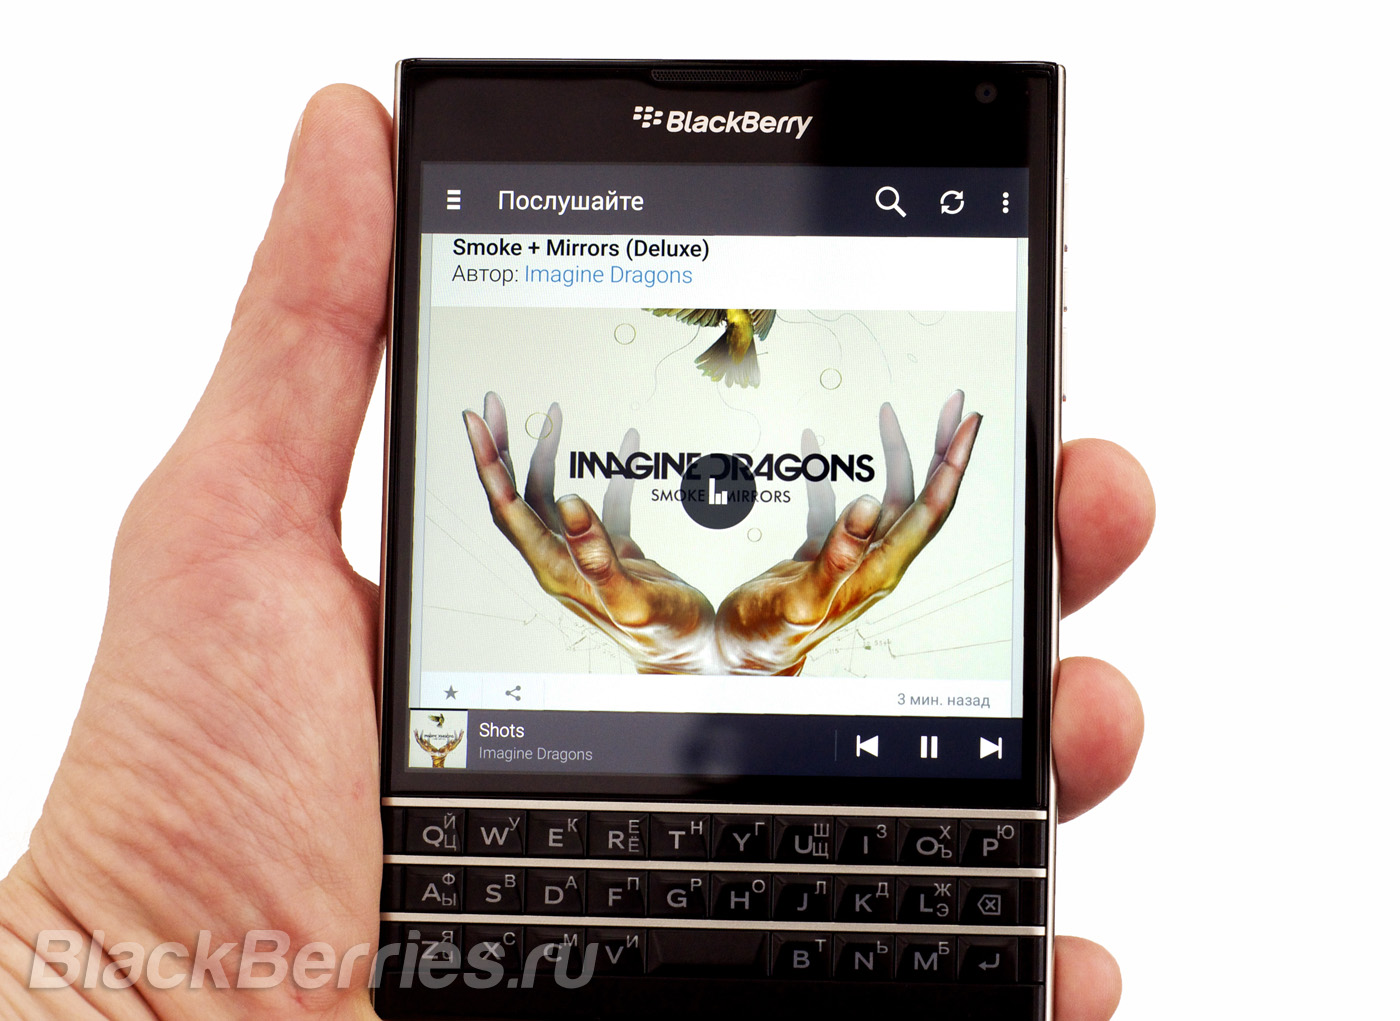 BlackBerry-Passport-Deezzer-1